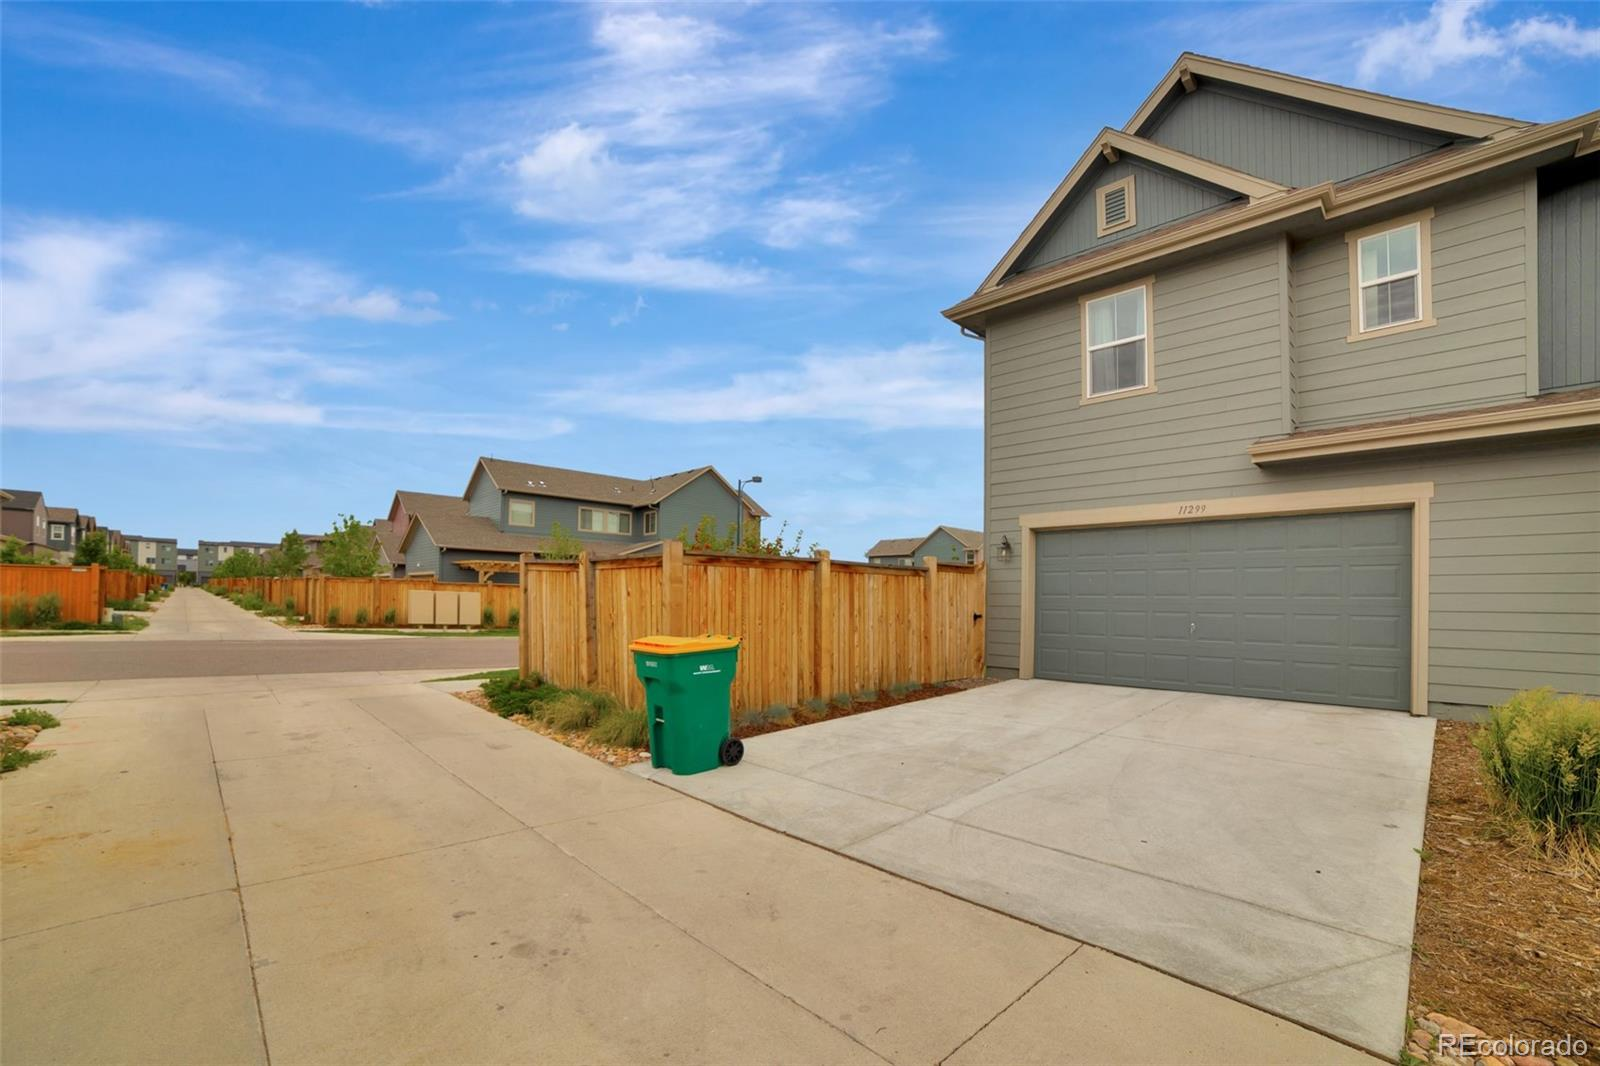 MLS# 2969883 - 20 - 11299 E 25th Drive, Aurora, CO 80010